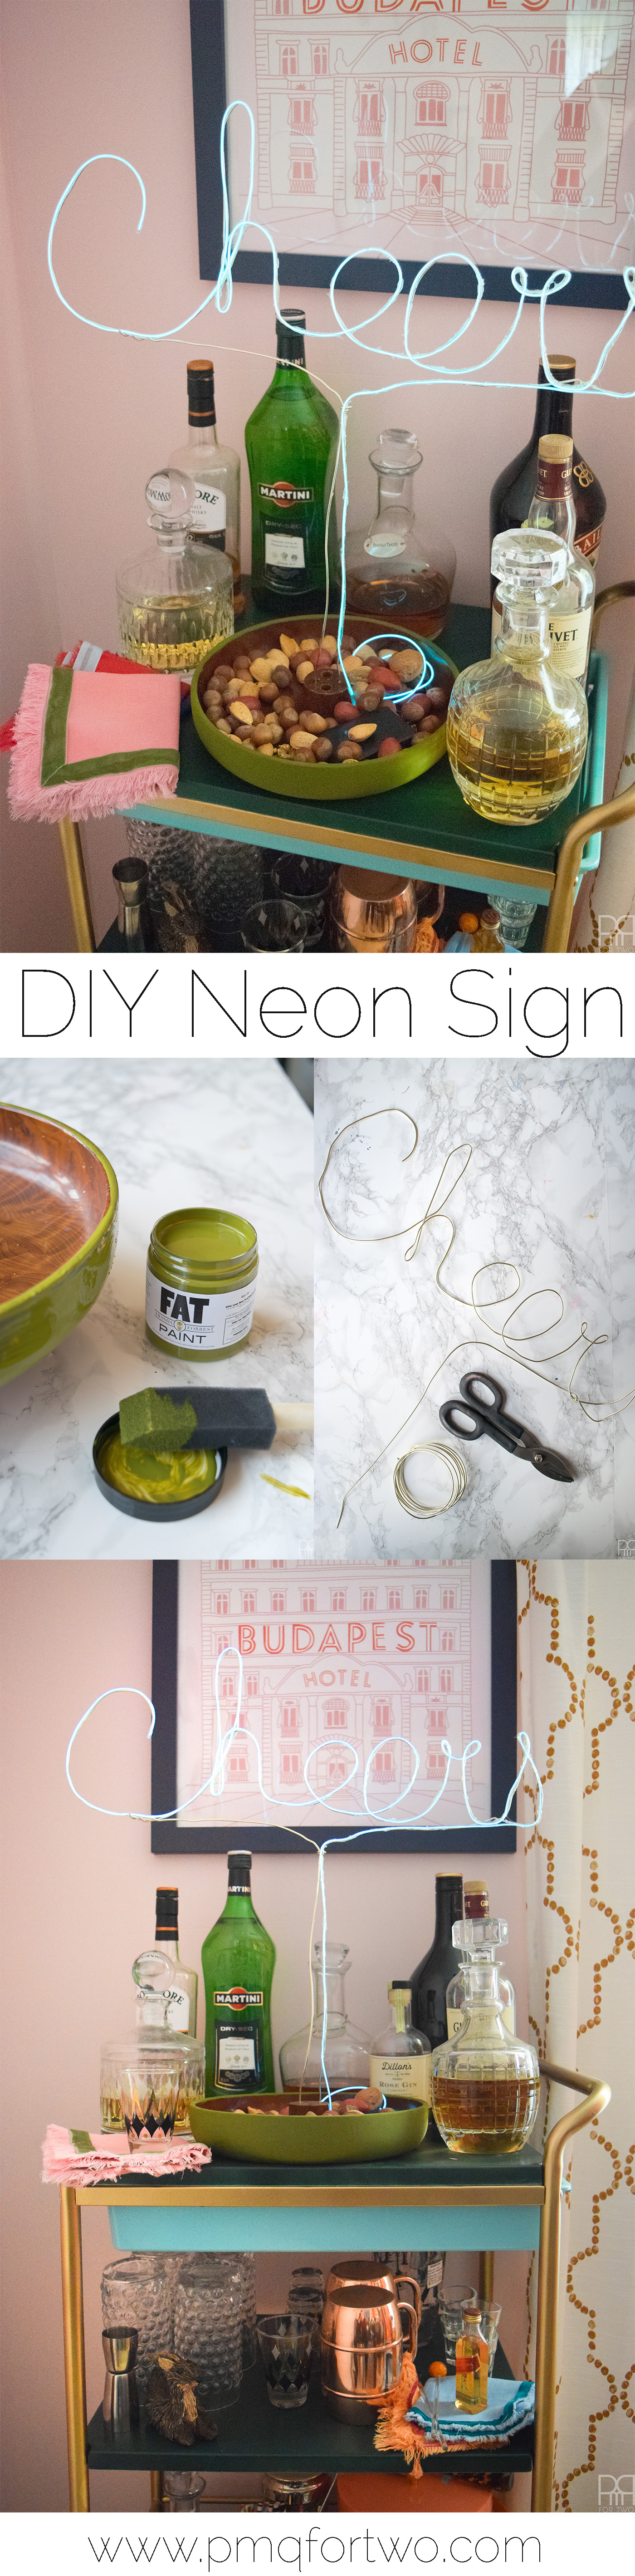 diy-neon-sign-pinterest-image